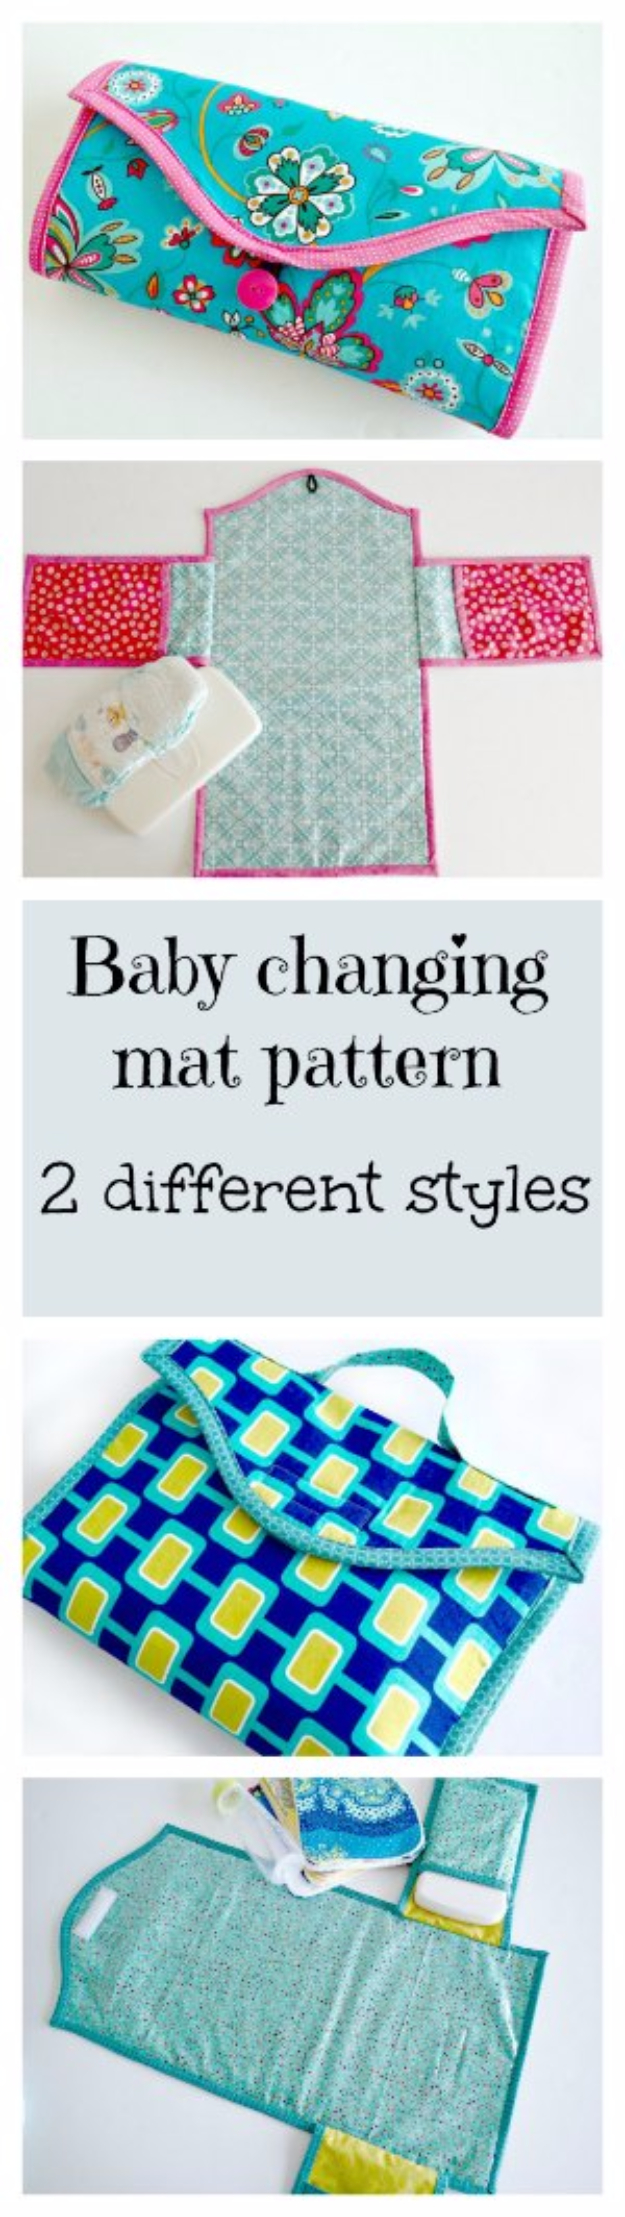 51 Things to Sew for Baby - Baby Changing Mat - Cool Gifts For Baby, Easy Things To Sew And Sell, Quick Things To Sew For Baby, Easy Baby Sewing Projects For Beginners, Baby Items To Sew And Sell #baby #diy #diygifts